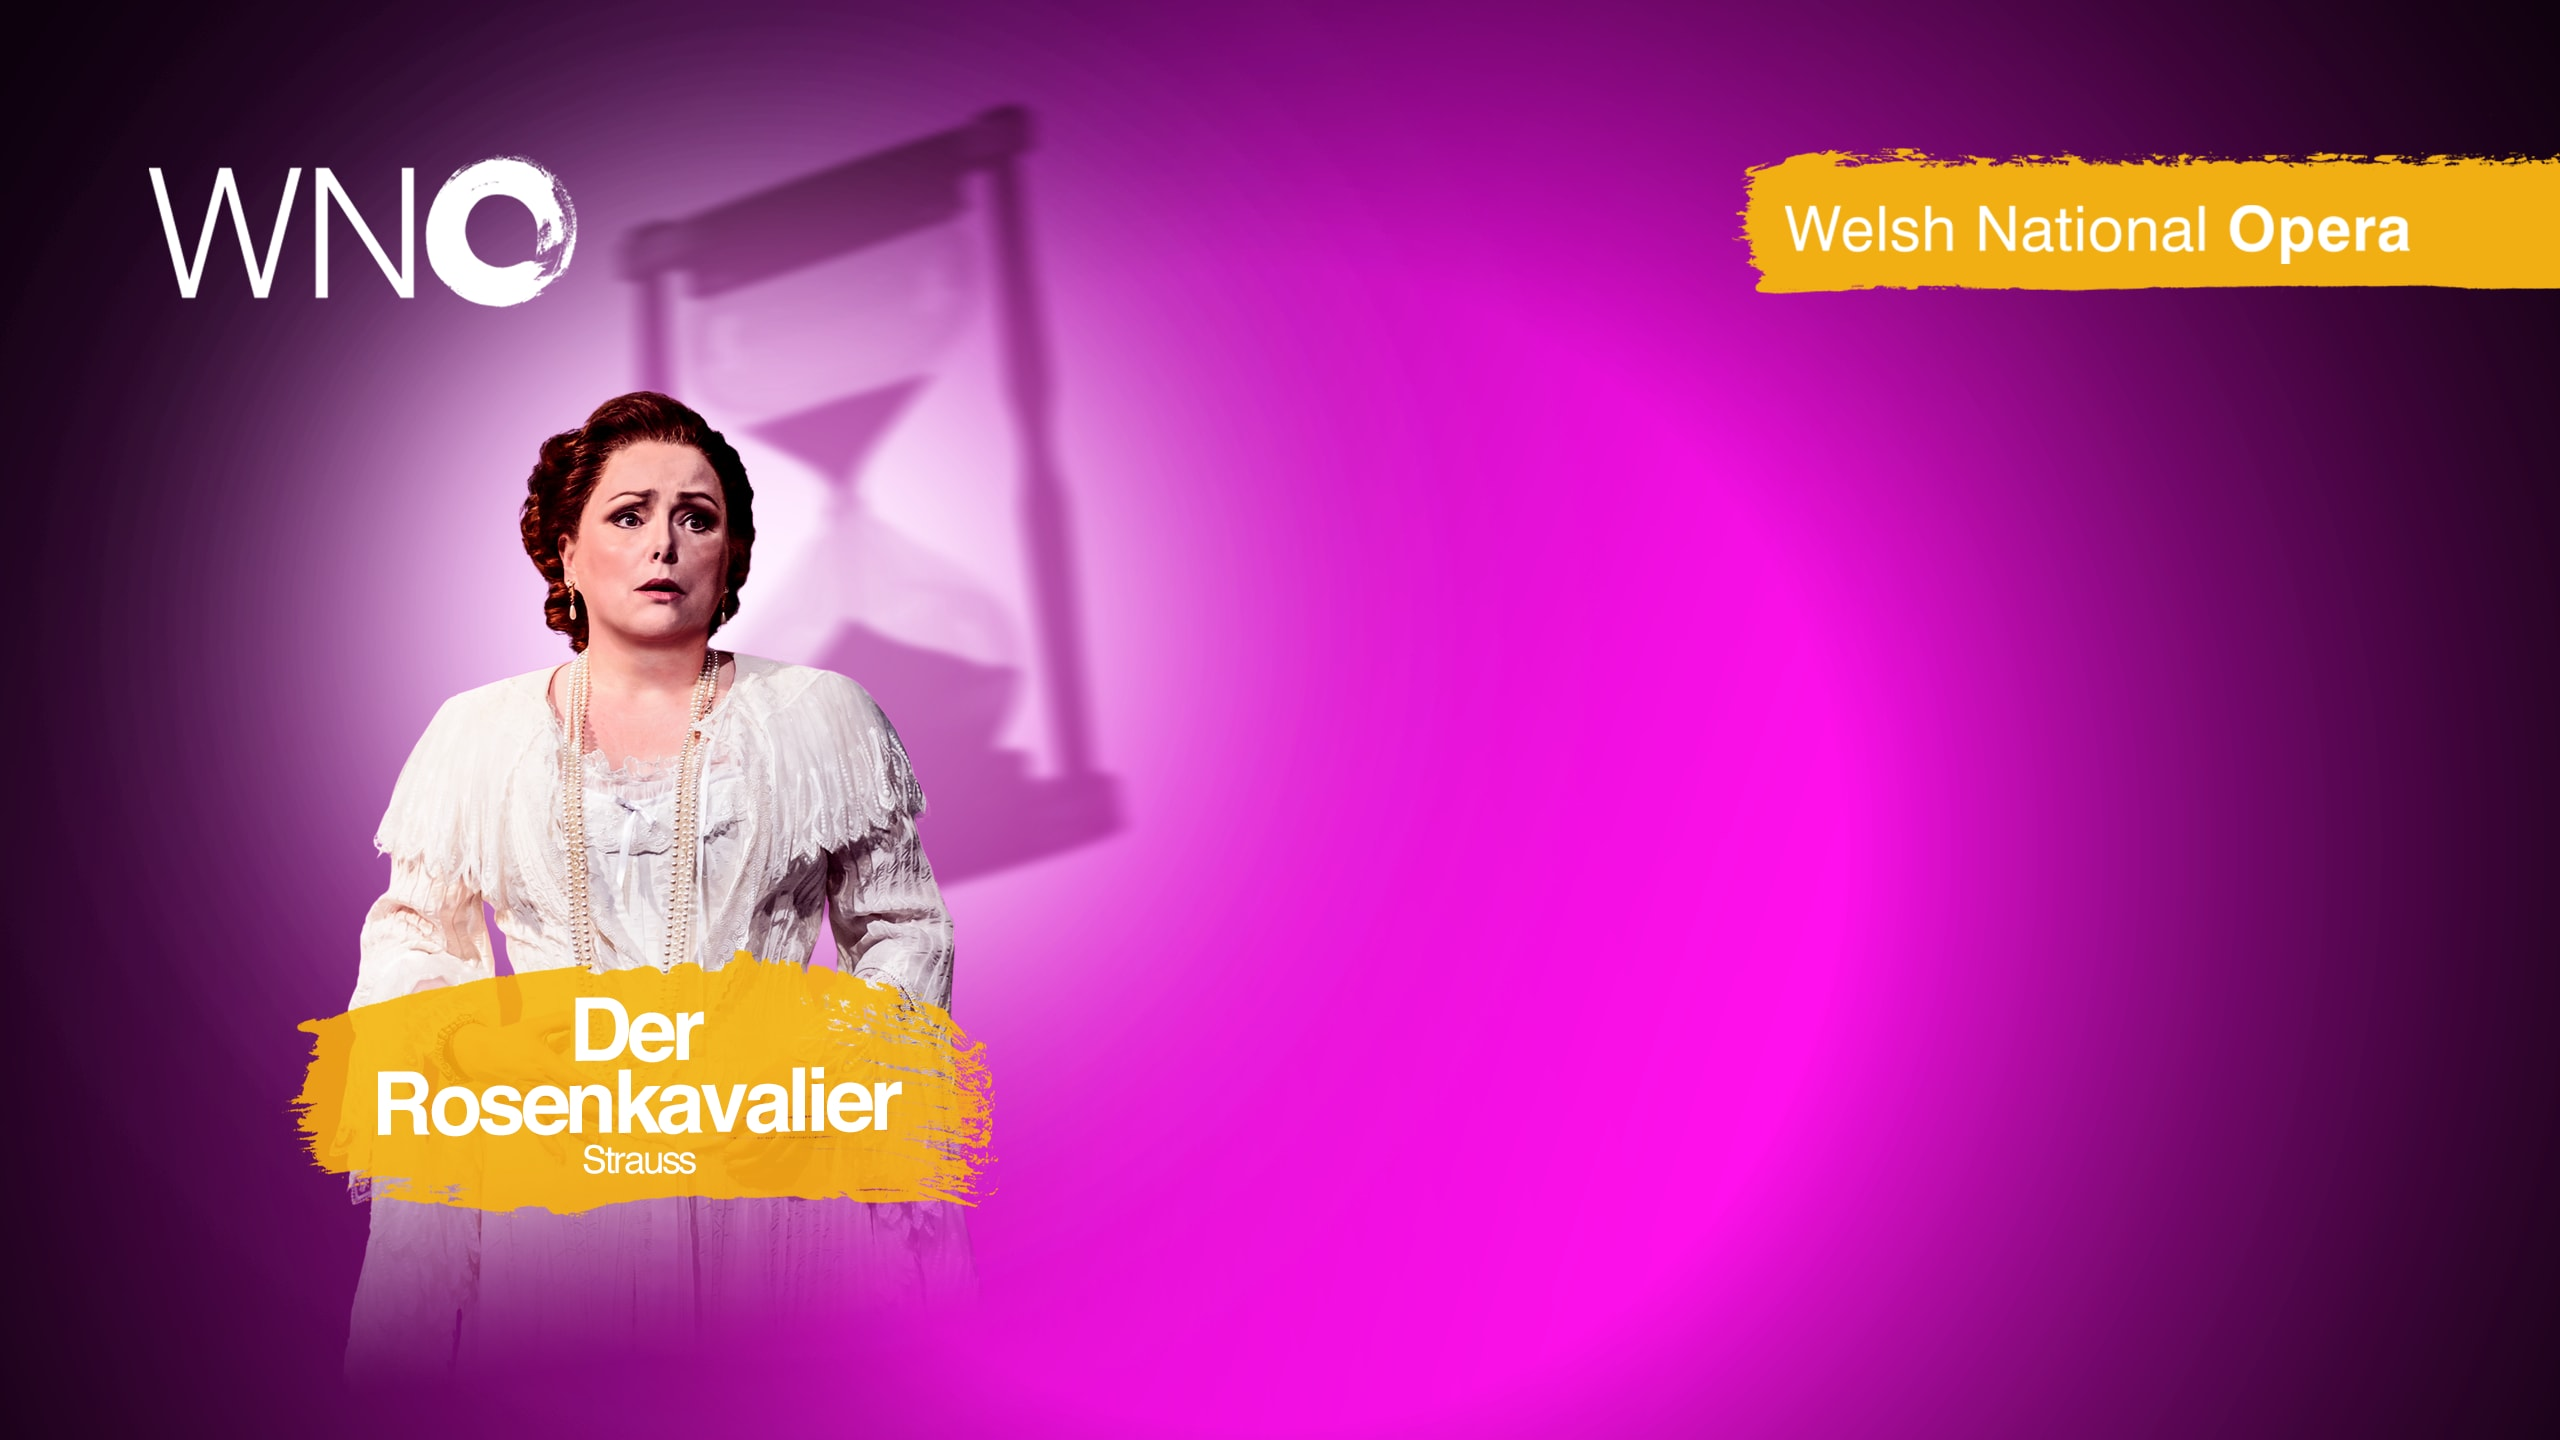 Welsh National Opera - Der Rosenkavalier Prod Shot